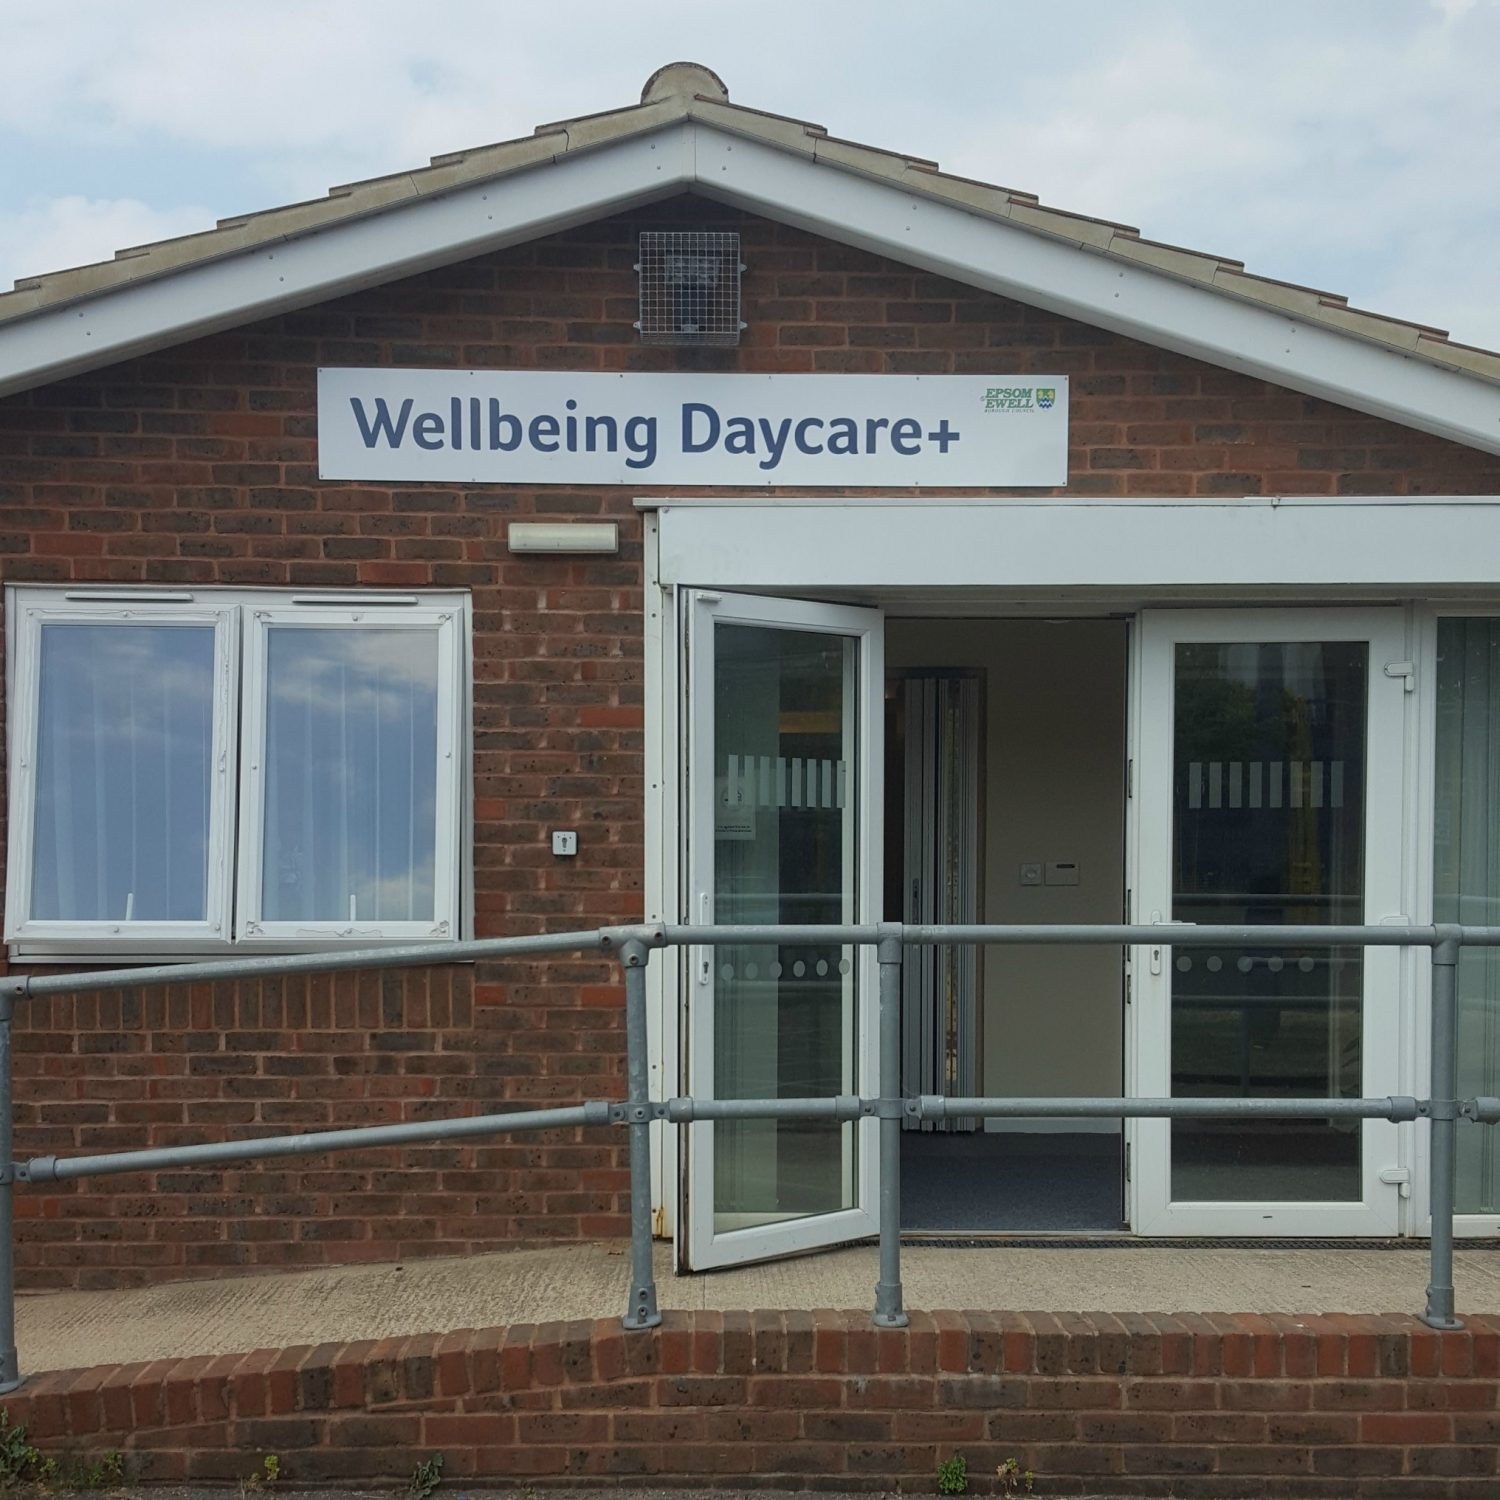 Epsom and Ewell Borough Council Wellbeing Daycare+ Centre